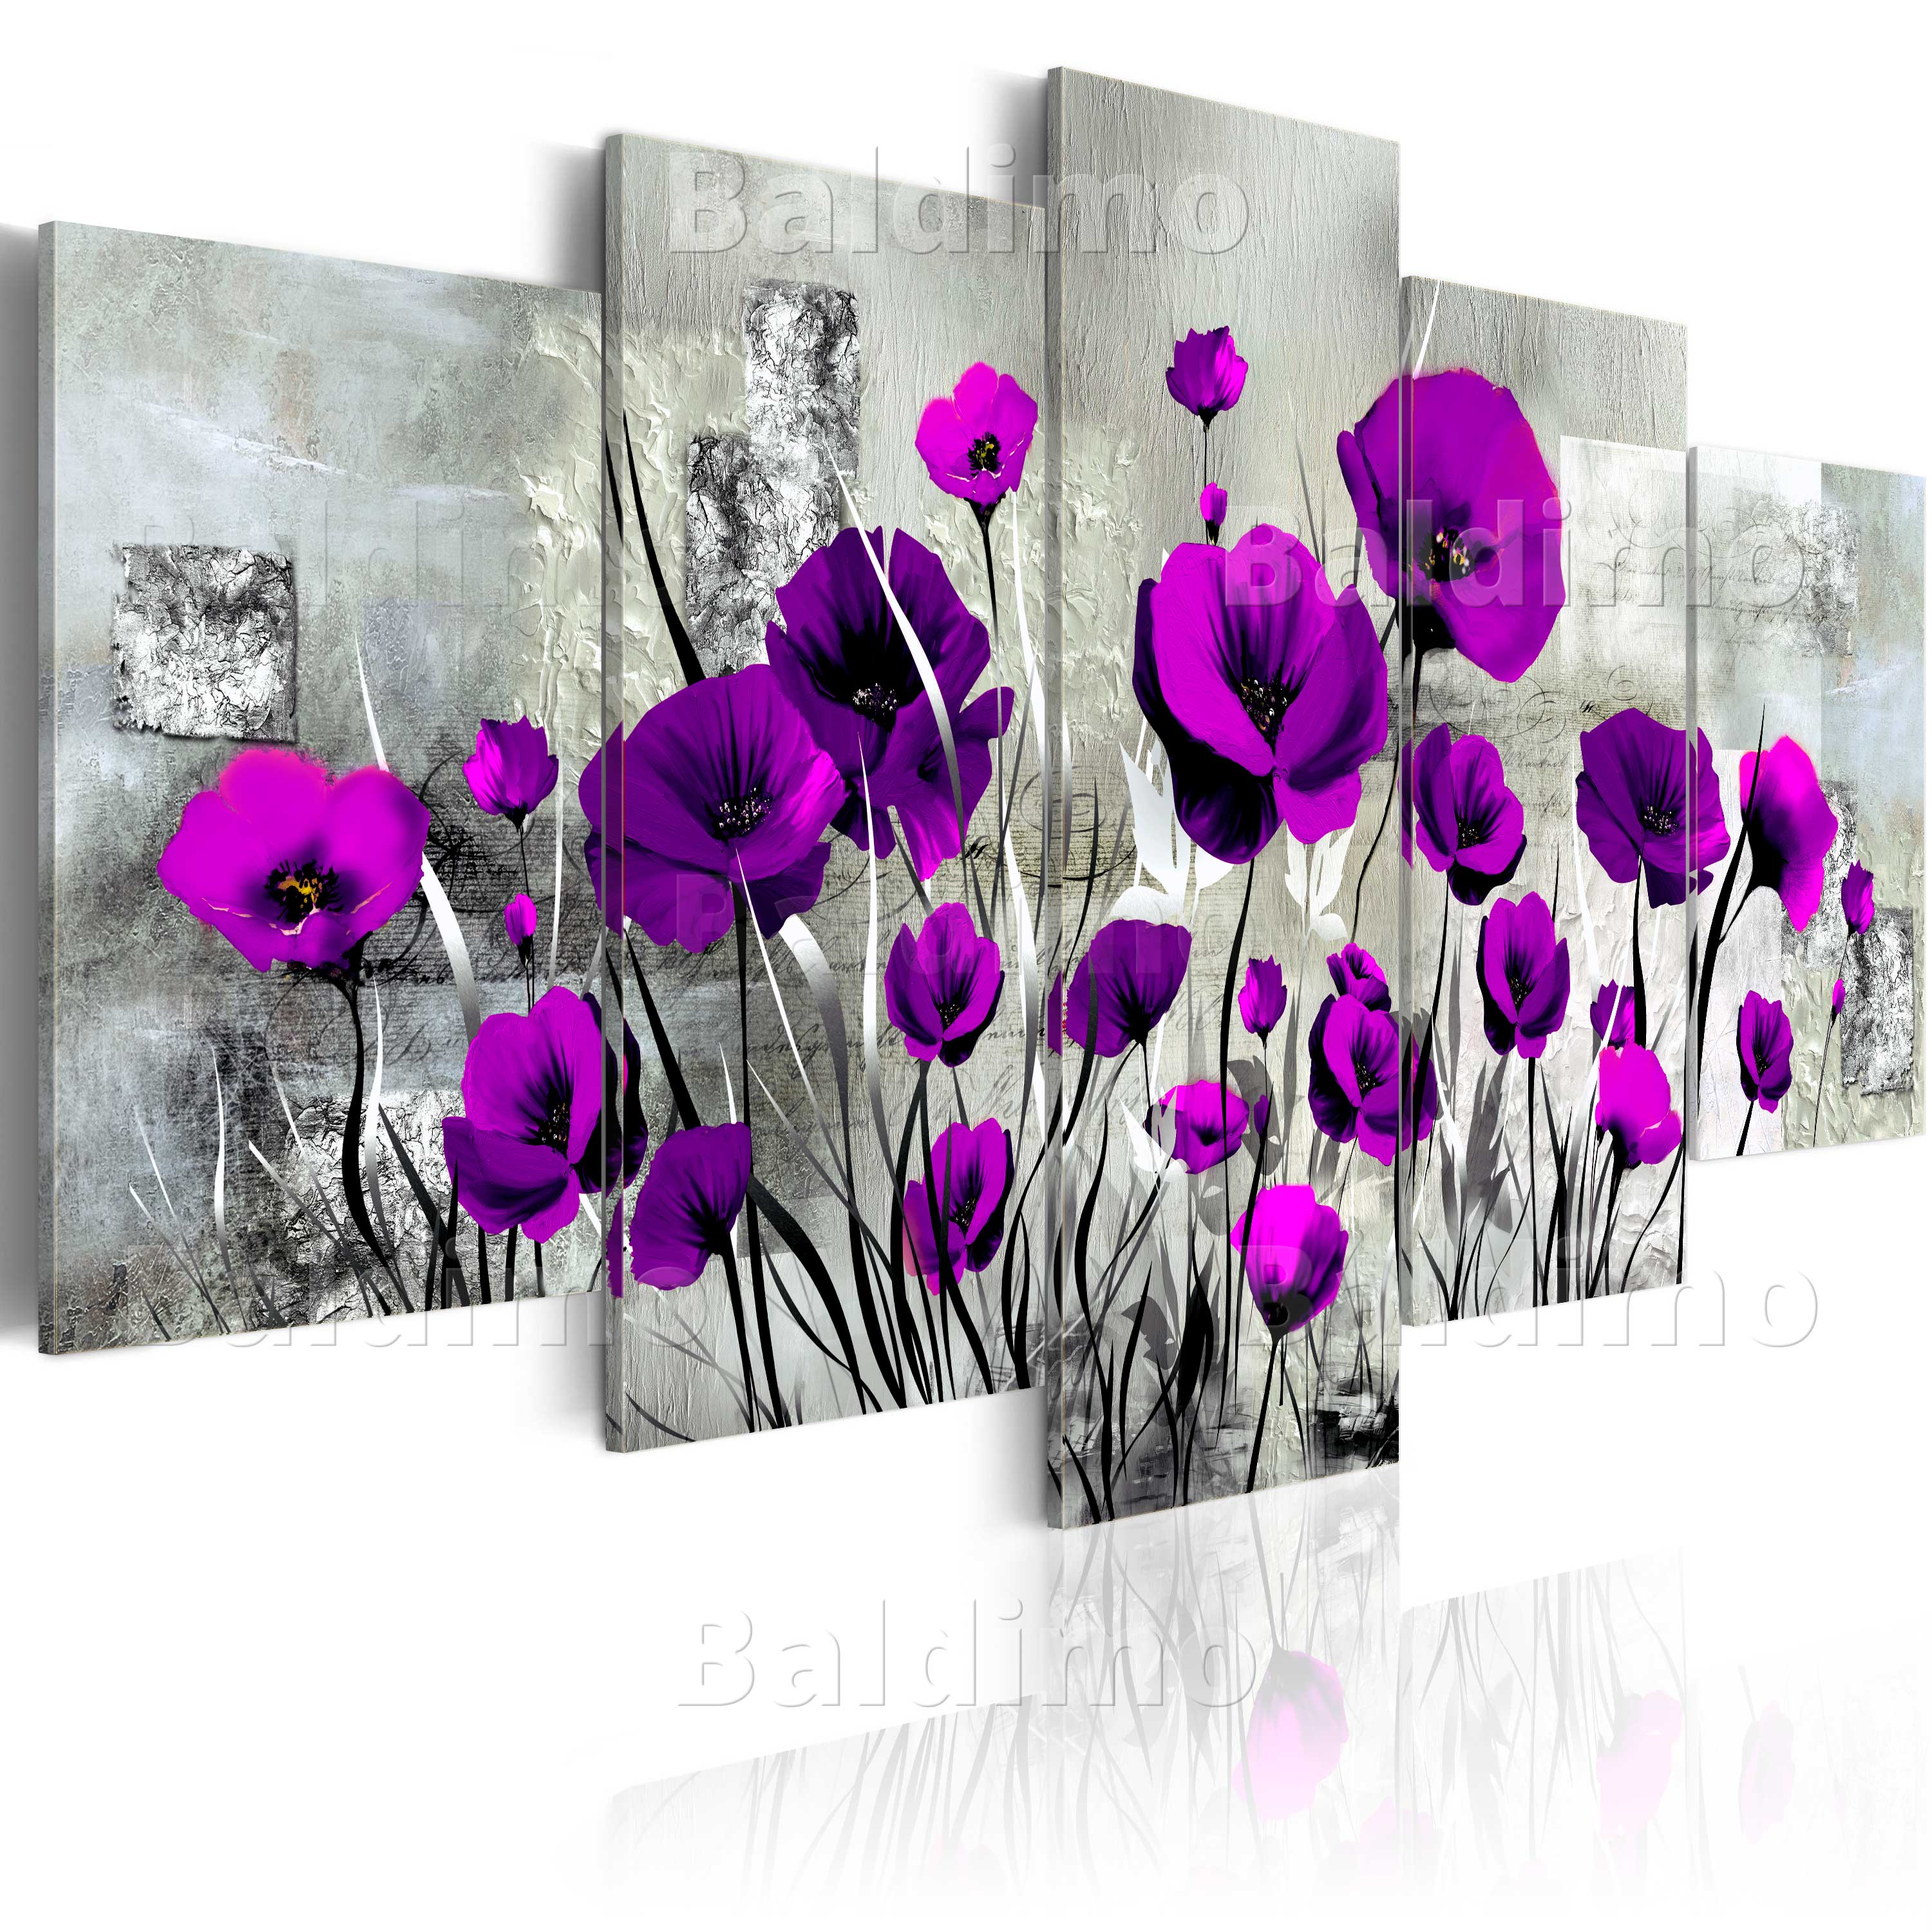 impression image sur toile xxl art tableau 2 formats fleurs b a 0001 b p ebay. Black Bedroom Furniture Sets. Home Design Ideas